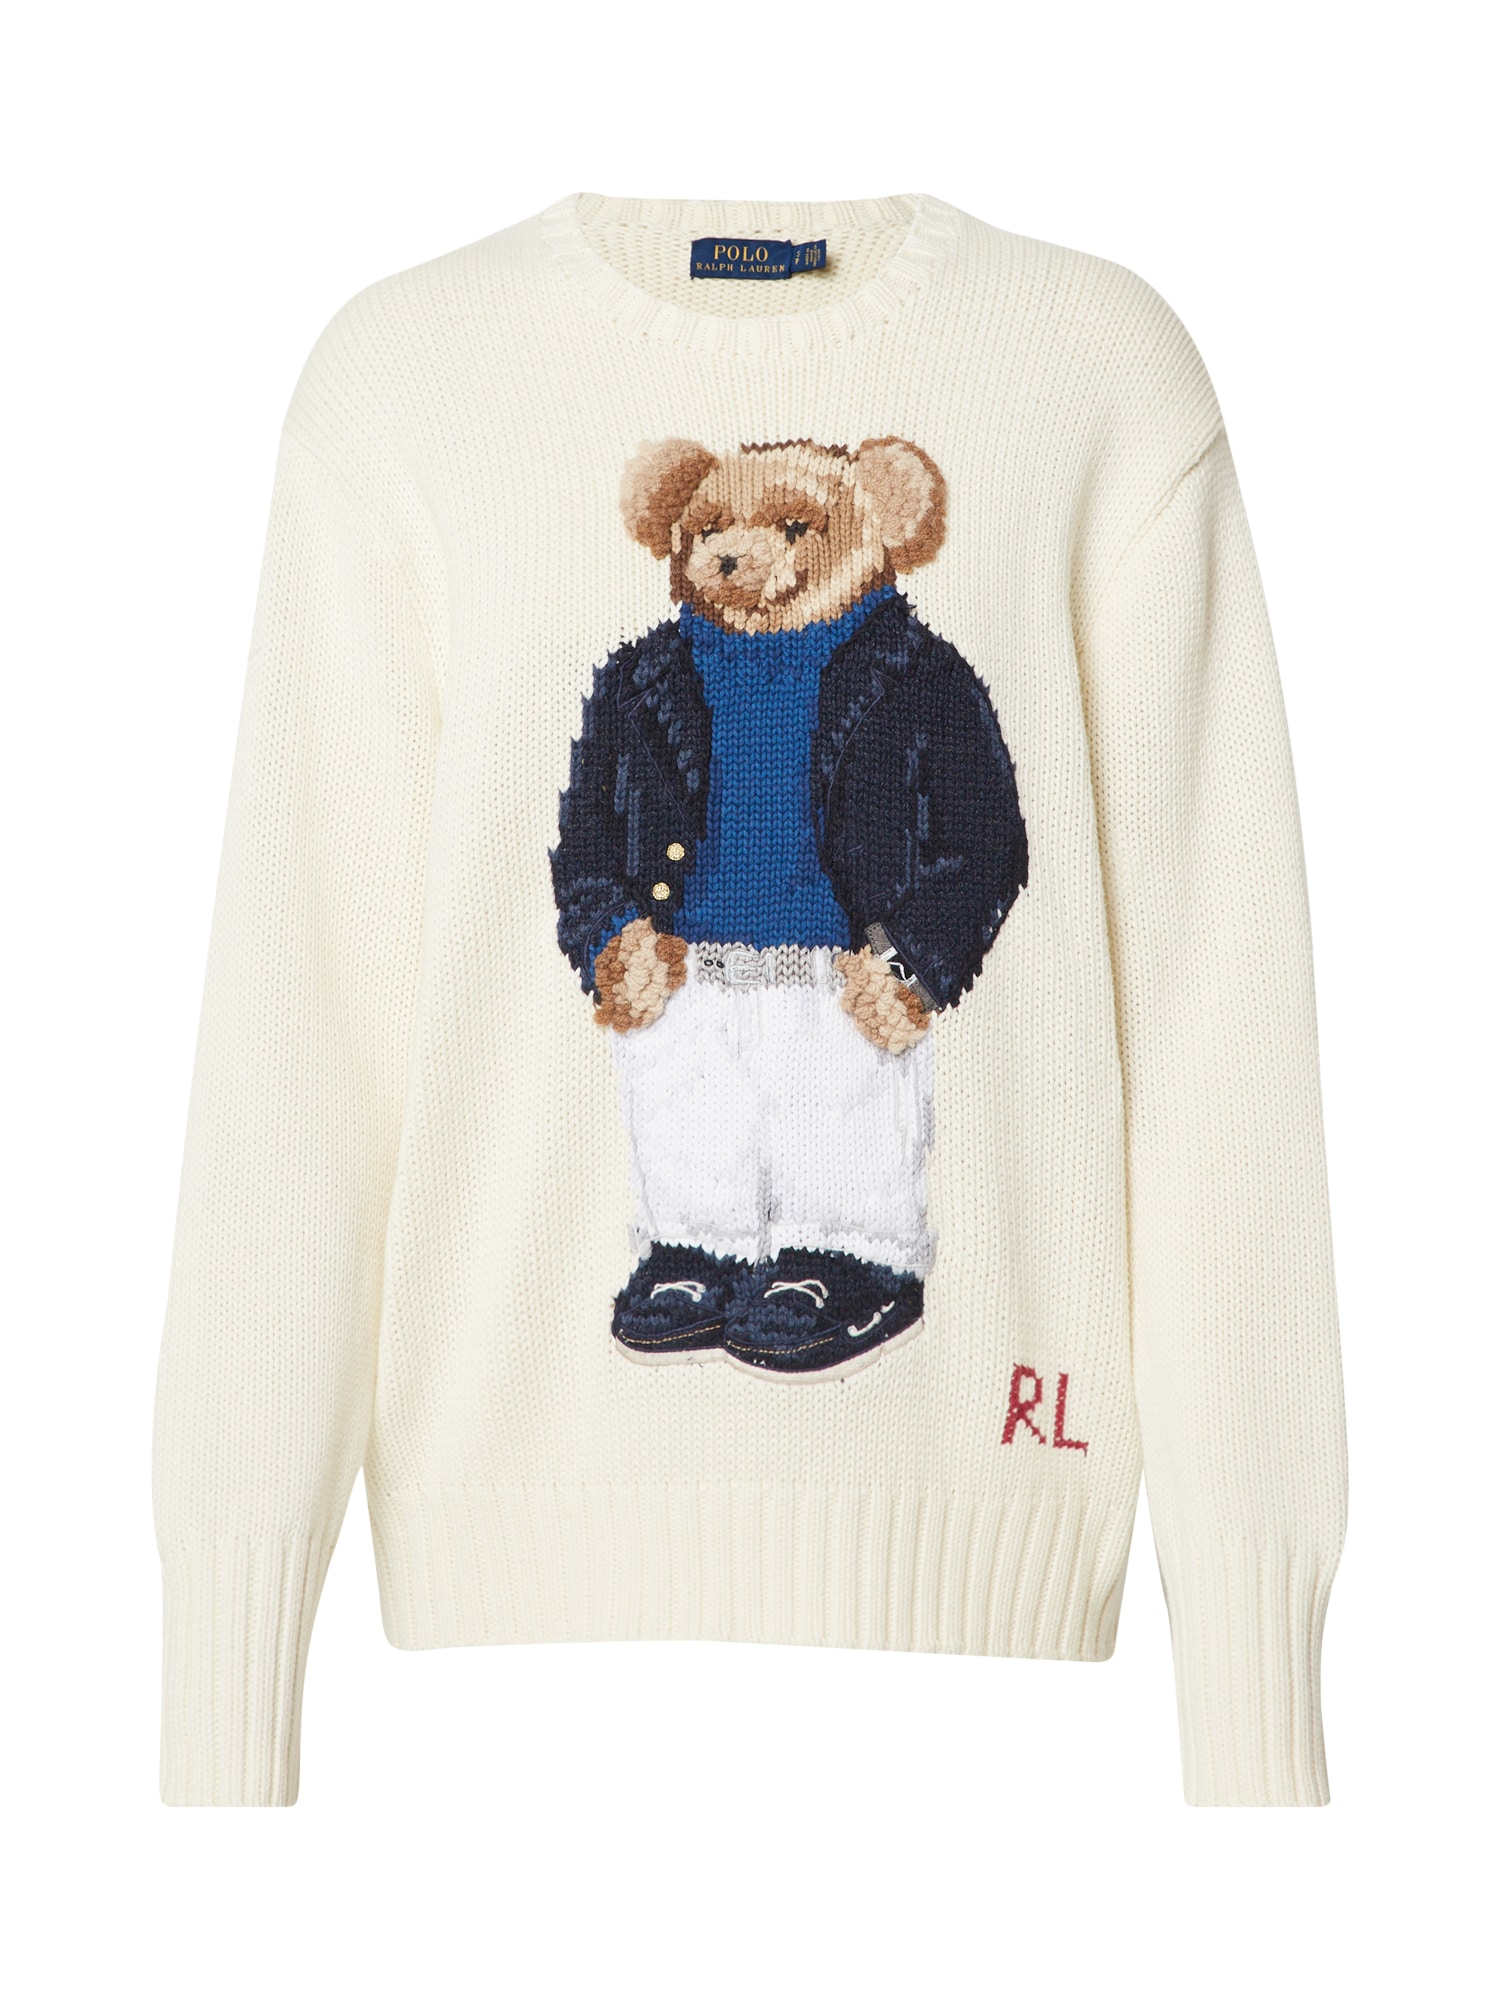 POLO RALPH LAUREN Svetr YACHT BEAR-LONG SLEEVE-SWEATER béžová Polo Ralph Lauren